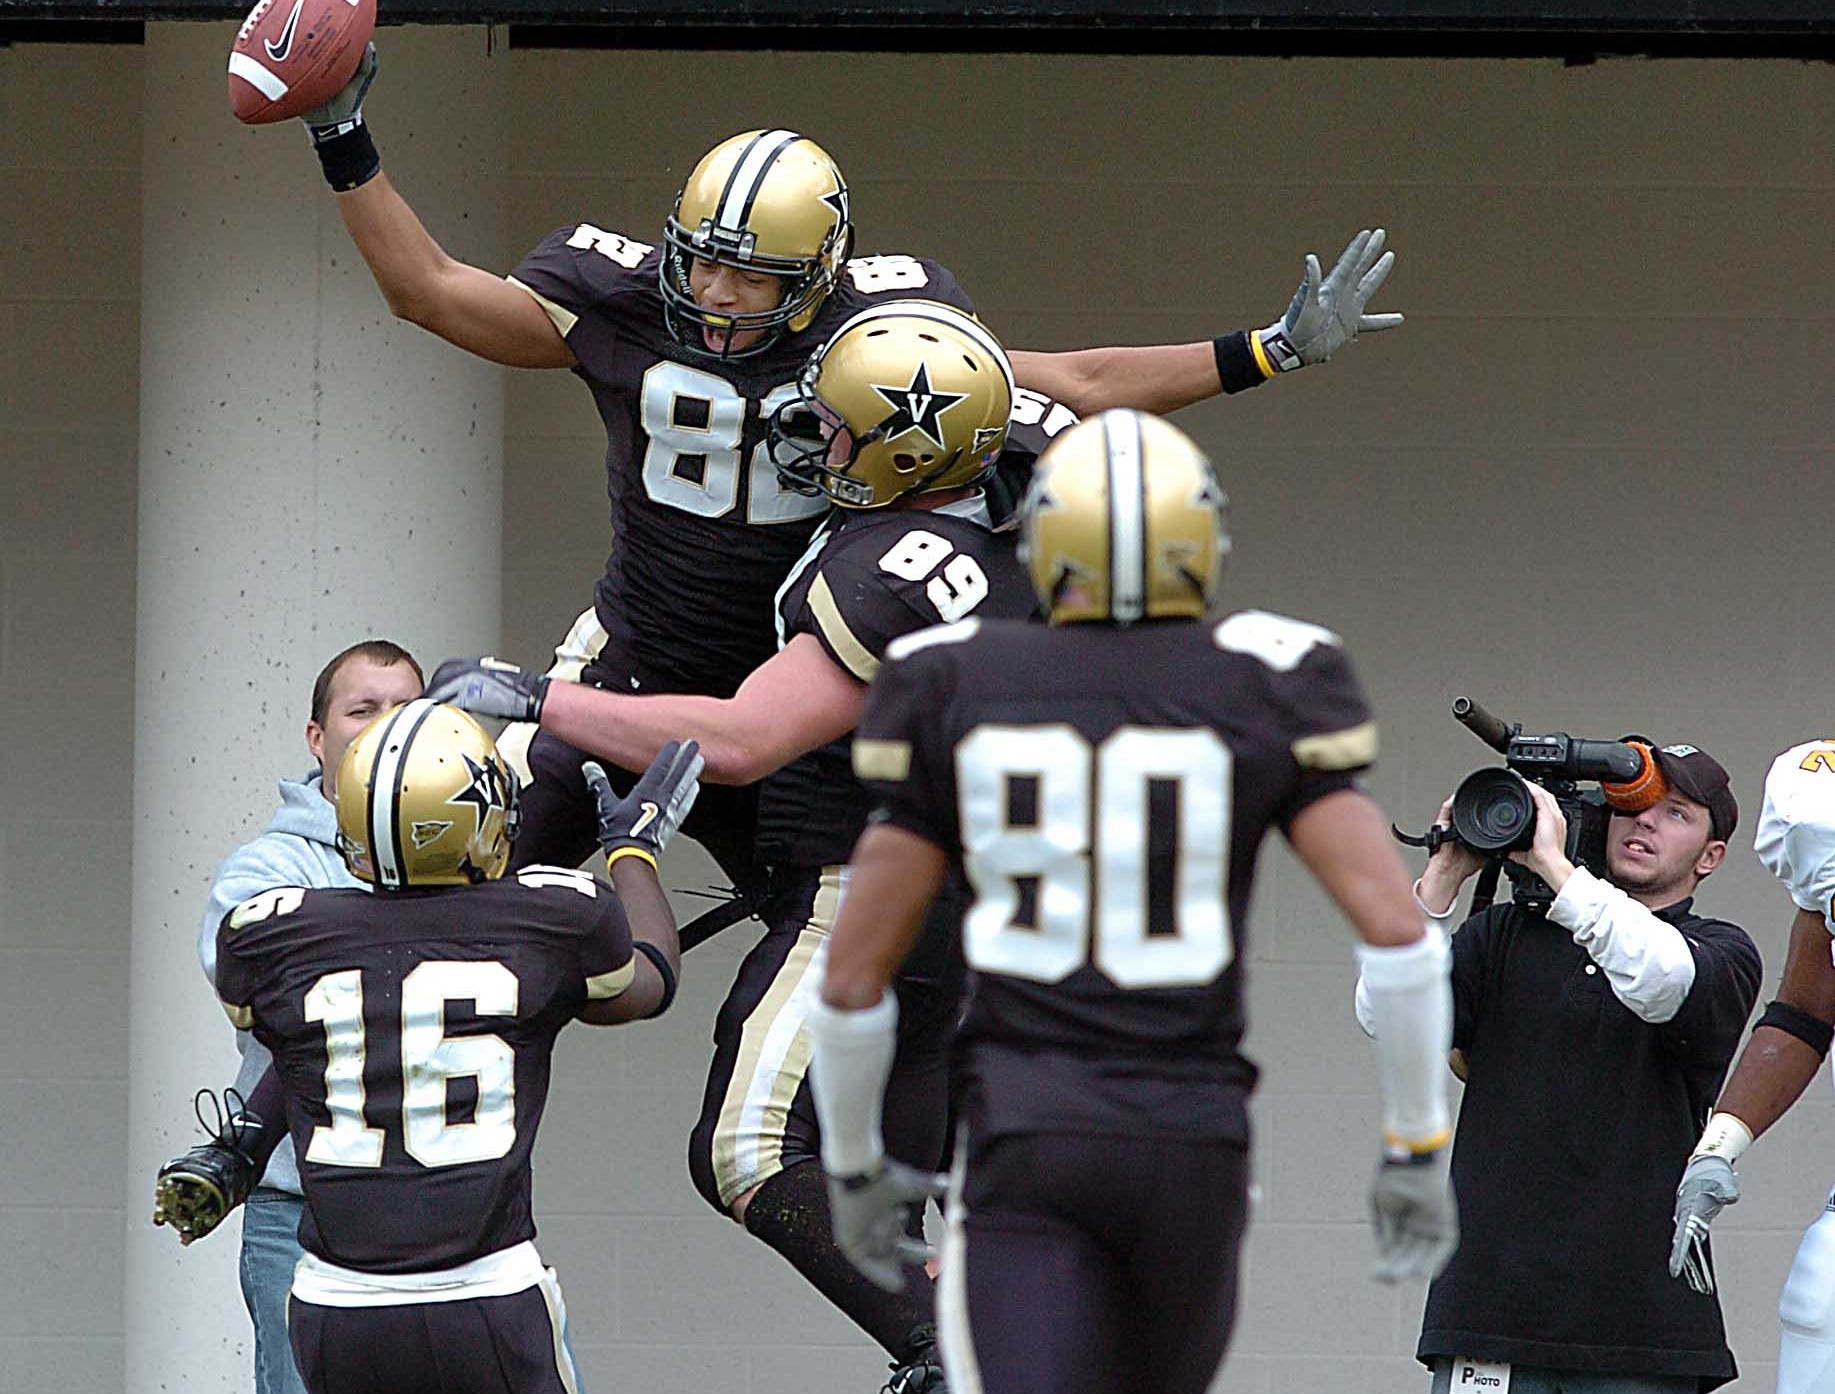 Vandy players celebrate after scoring their first touchdown againat Tennessee Saturday, Nov. 20, 2004 in Nashville.  Vandy's (82) Brad Allen scored and celebrates with (89) Jonathan Loyte and (16) Chris Young.